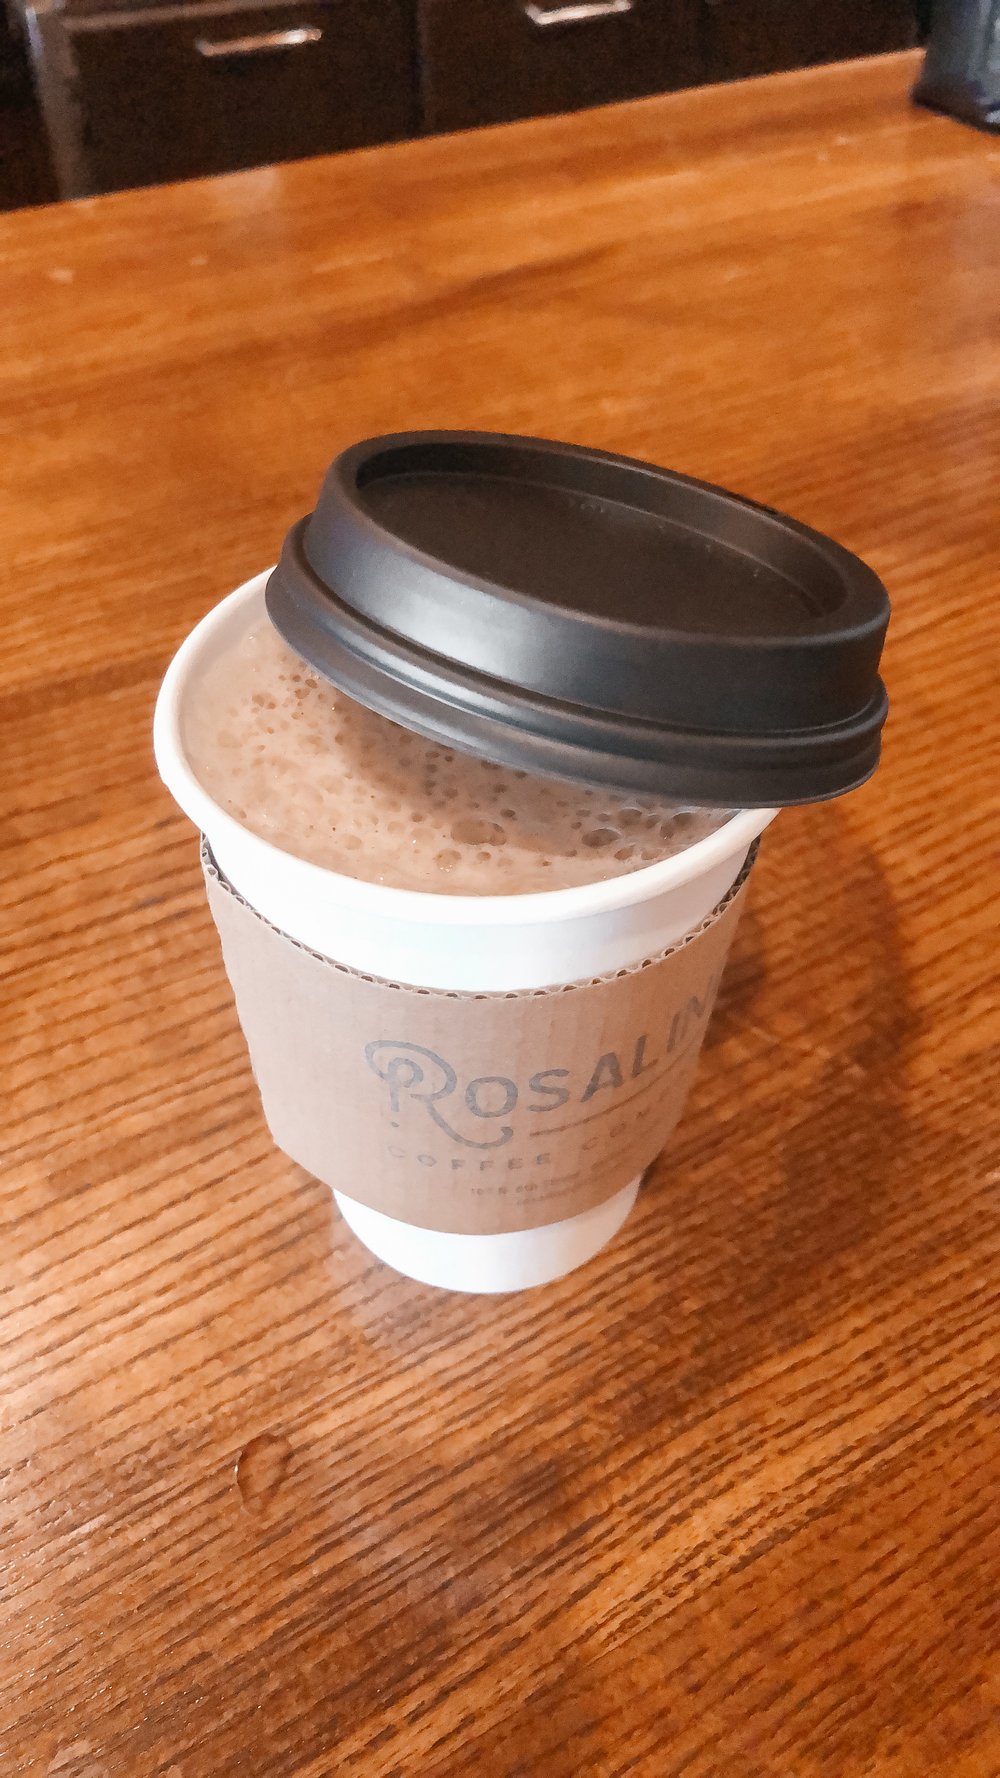 Rosalind Coffee in Garland 107 N 6th St, Garland, TX 75040 - Apple Chaider